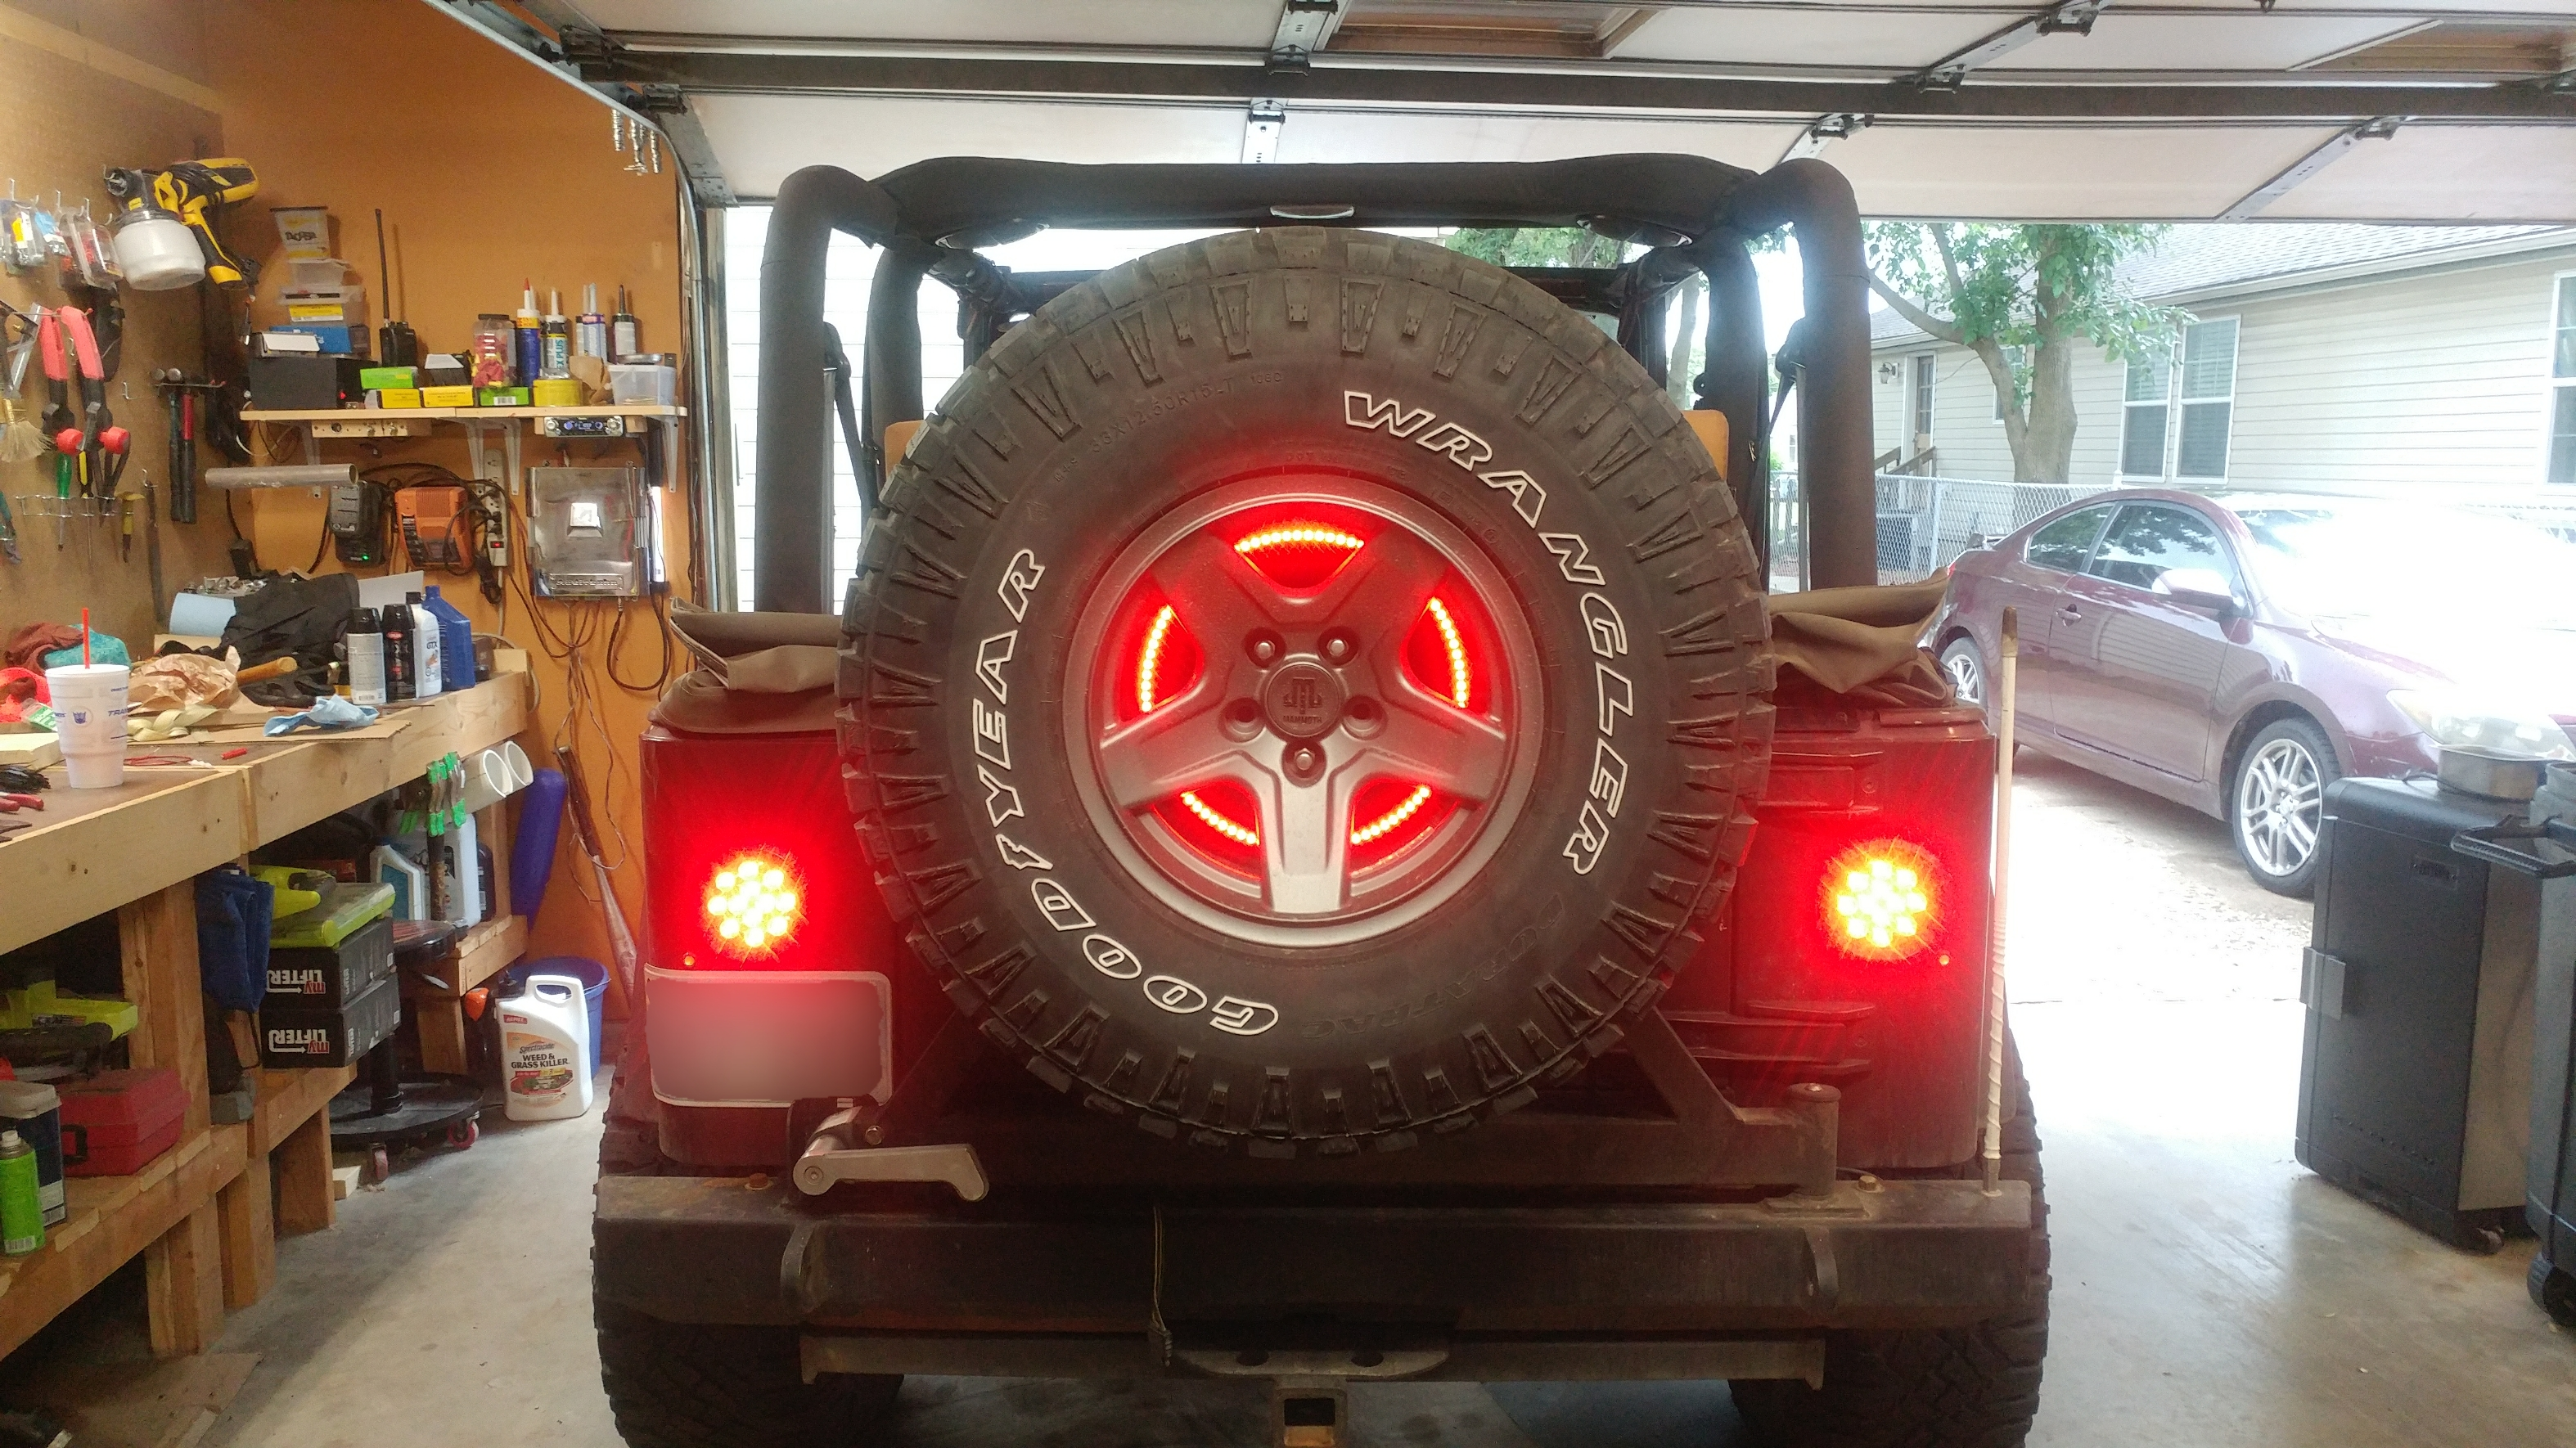 My 20 3rd brake light led ring jeep wrangler forum 1 side emitting led strip red 2 home depot 5 gallon bucket lid 3 clear silicone aloadofball Choice Image